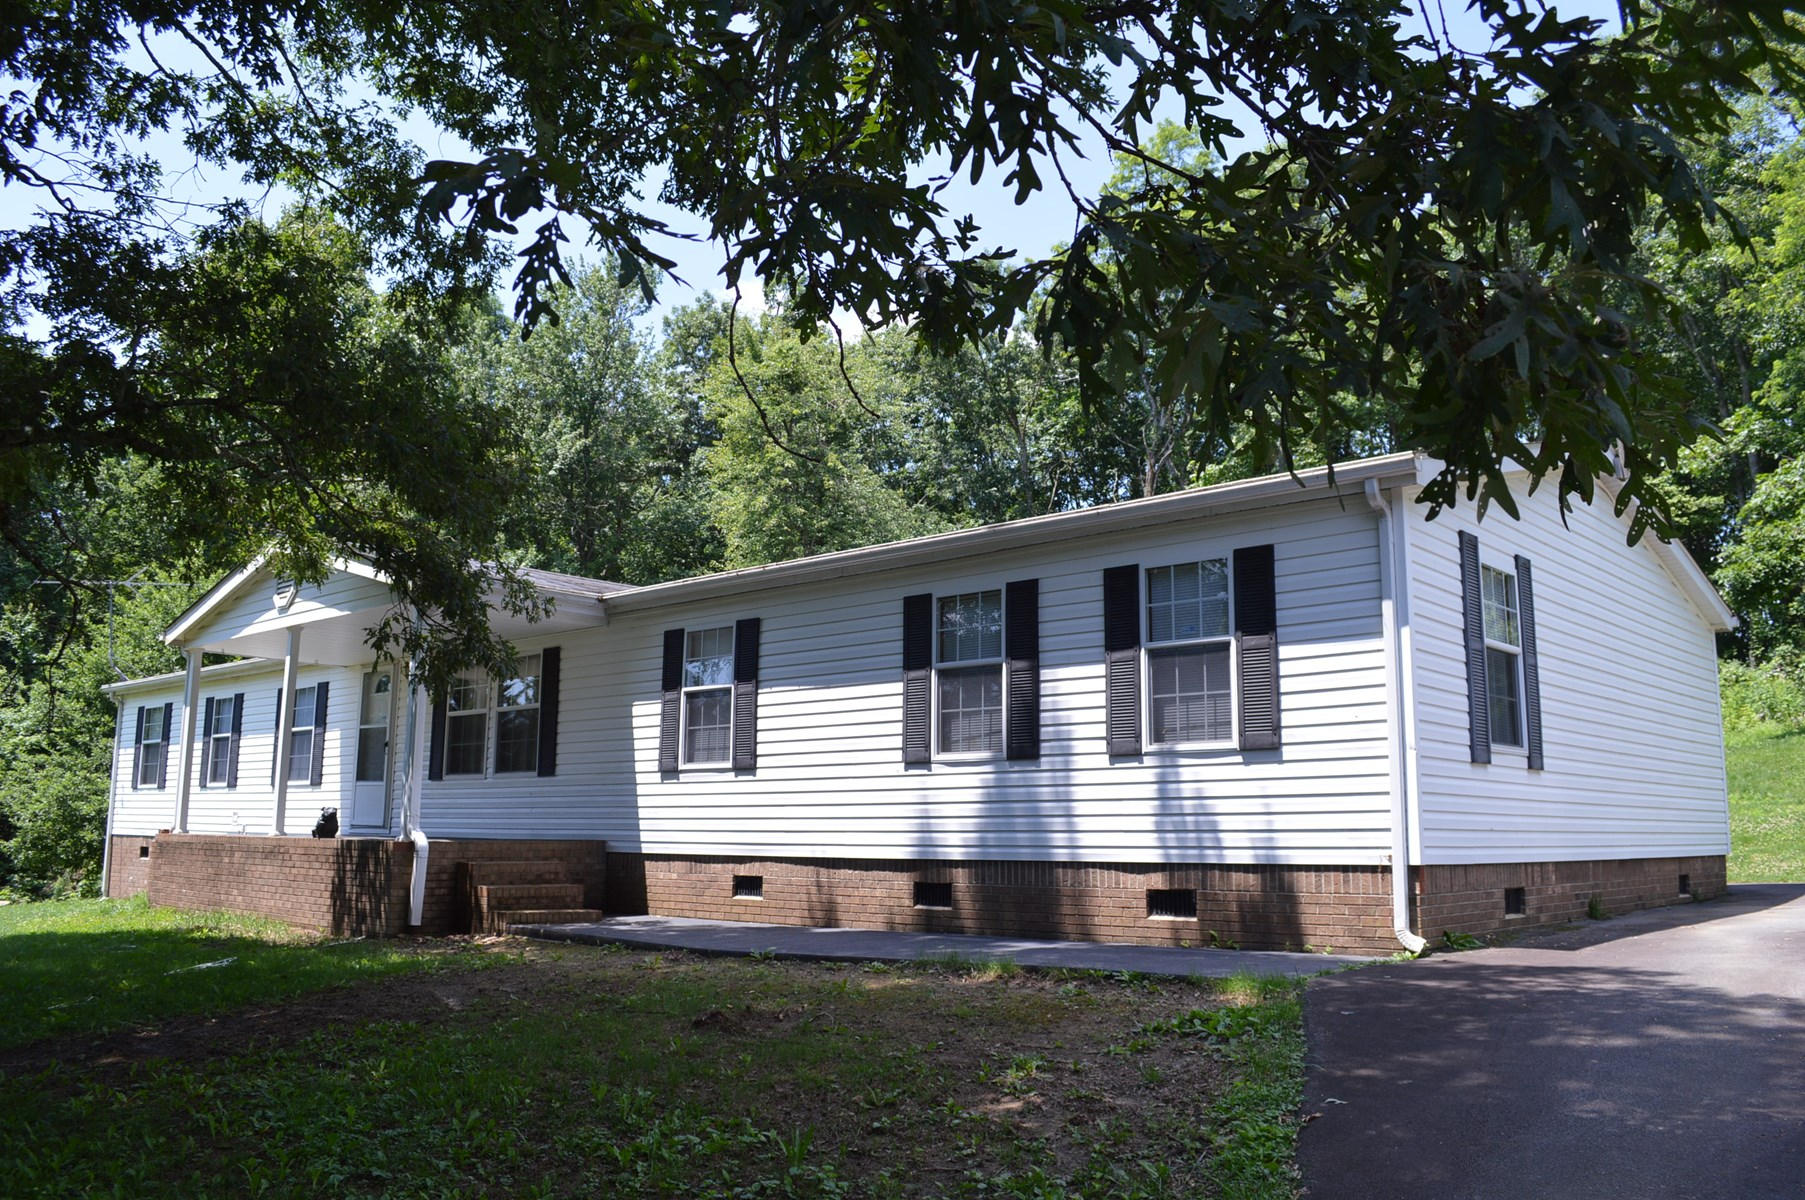 Extremely Nice Double-Wide Manufactured Home in Ennice NC